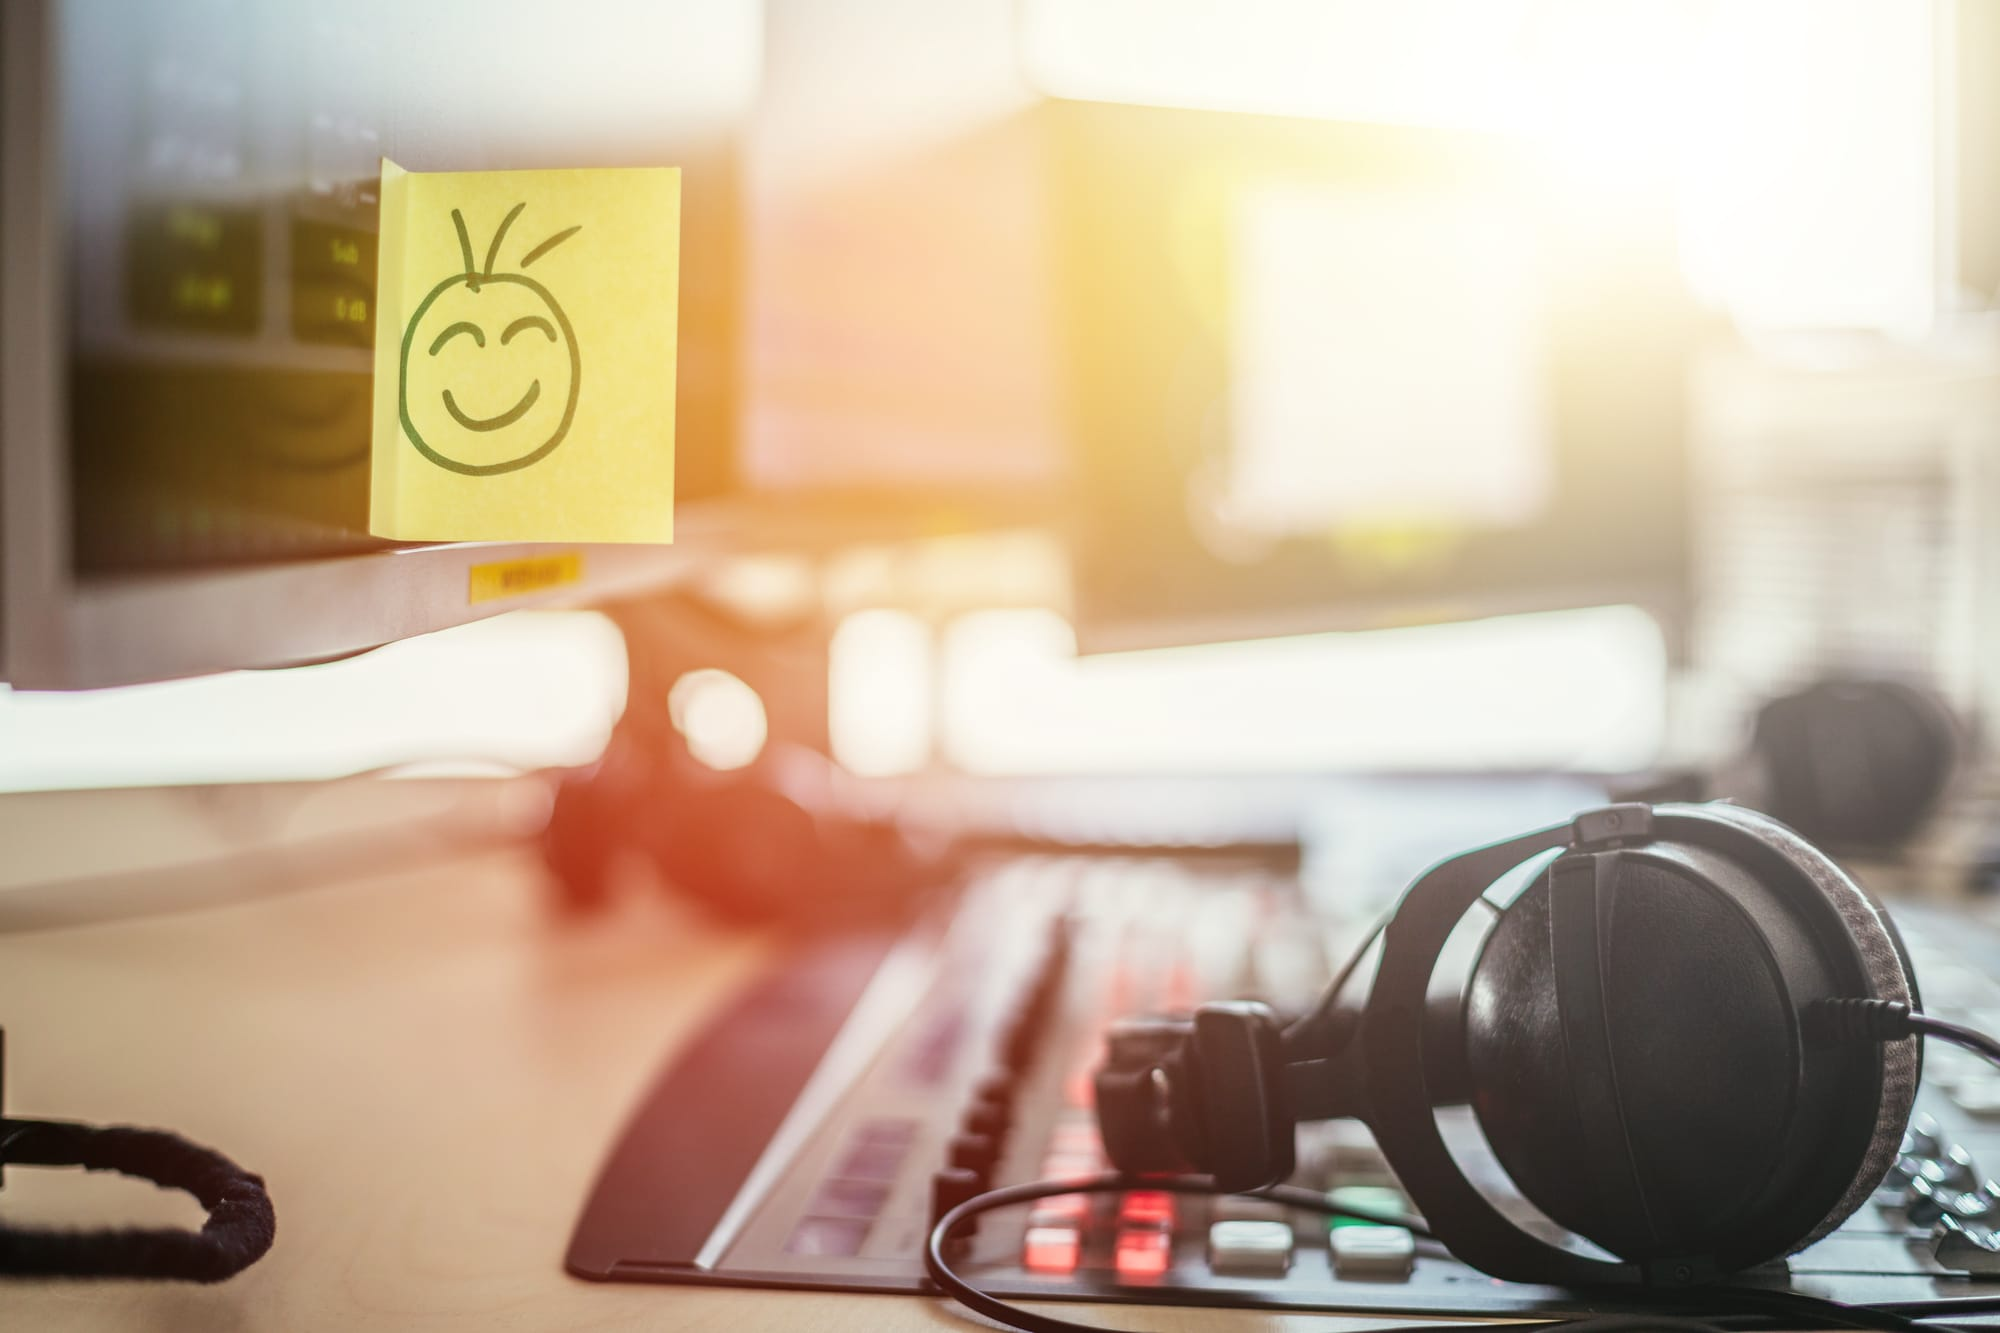 Monitor with smiley face post-it